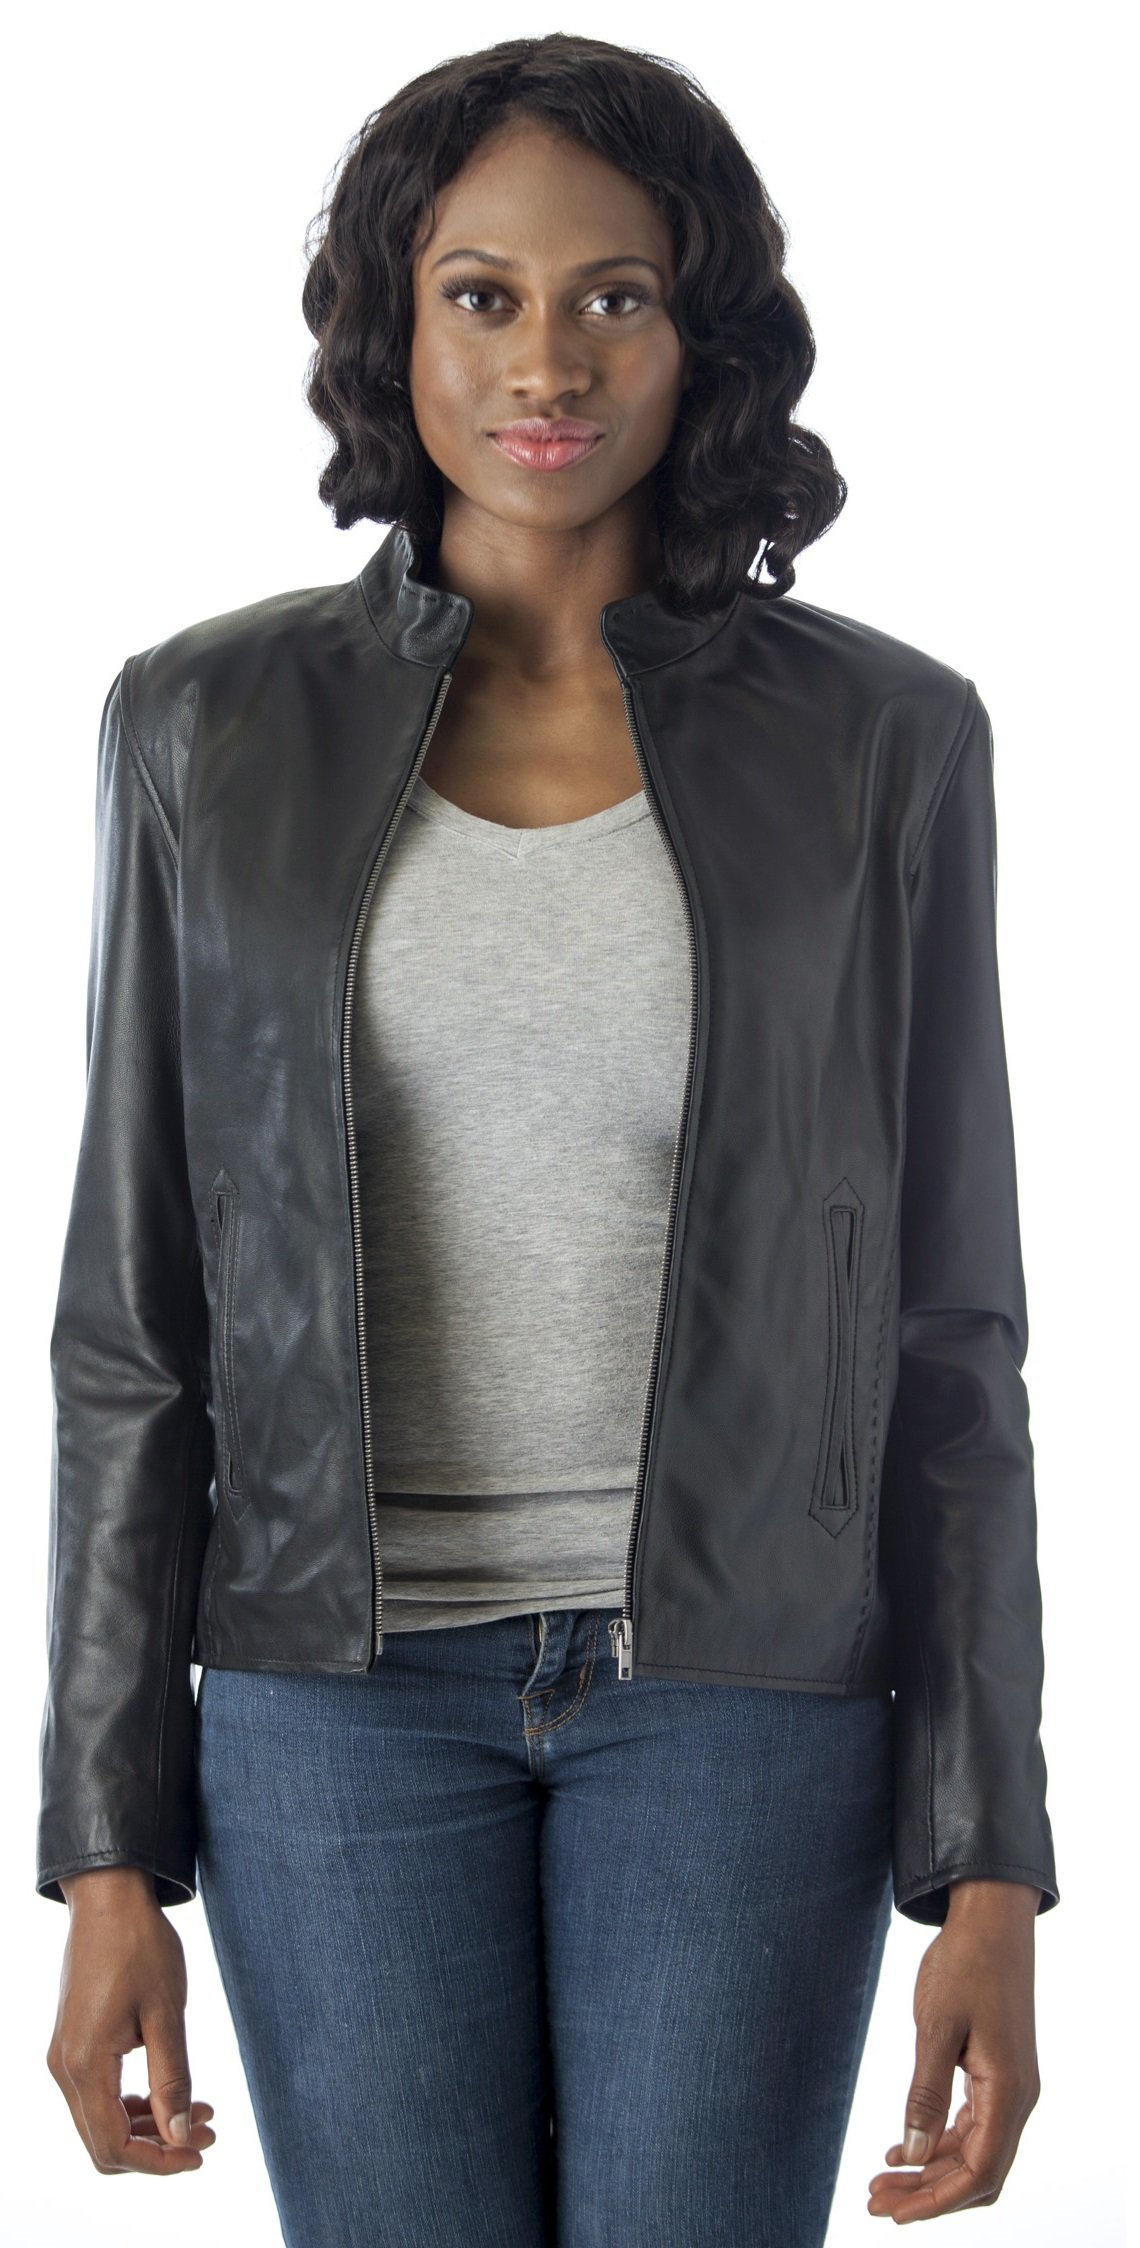 REED Women's Moto style Real Leather Jacket (Large, Black) by REED